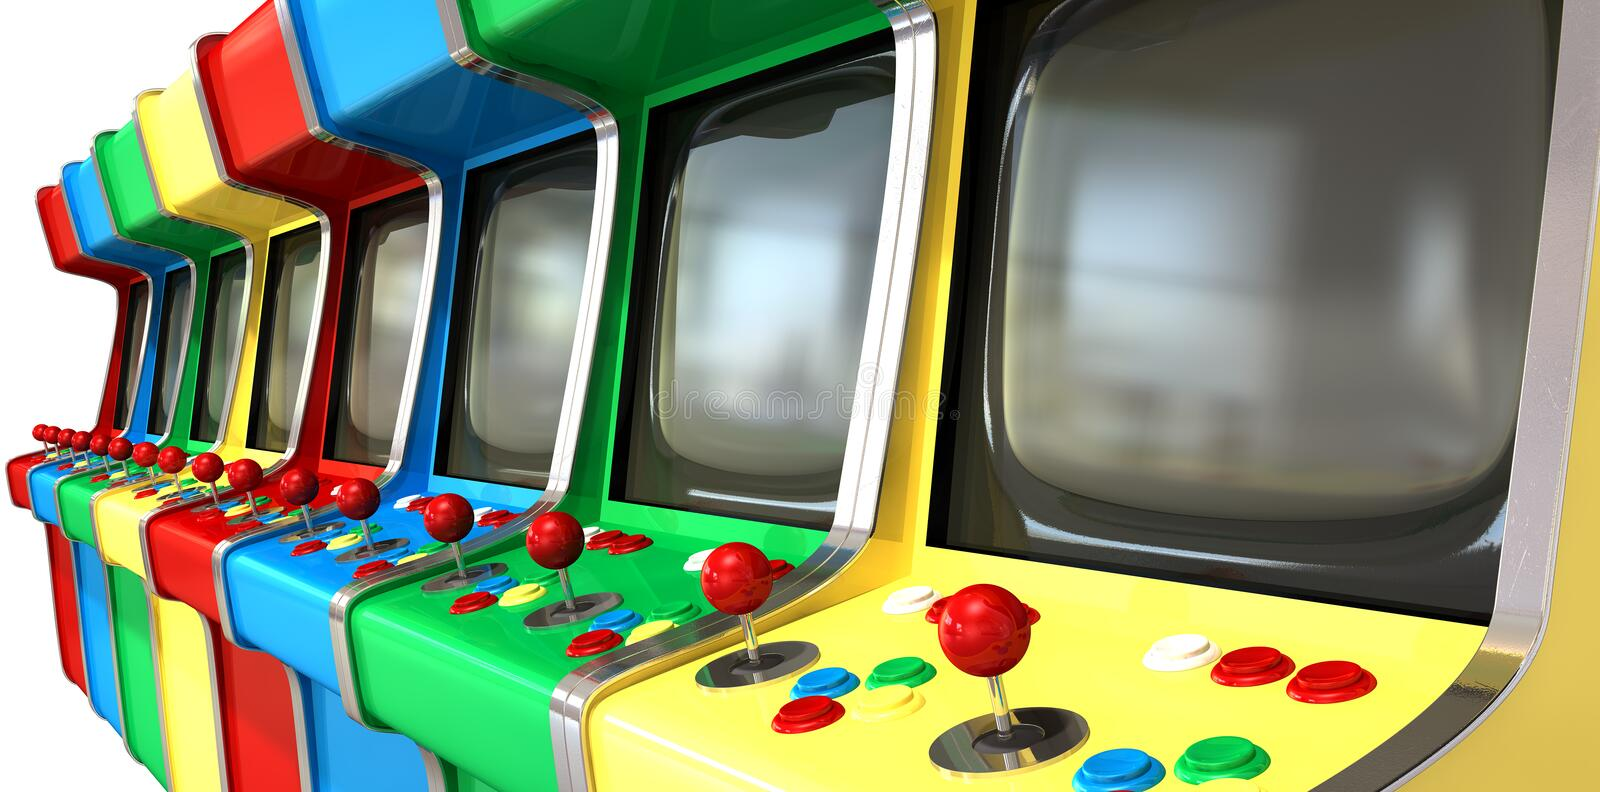 Download Arcade Game Machines row stock illustration. Illustration of compute - 34569009